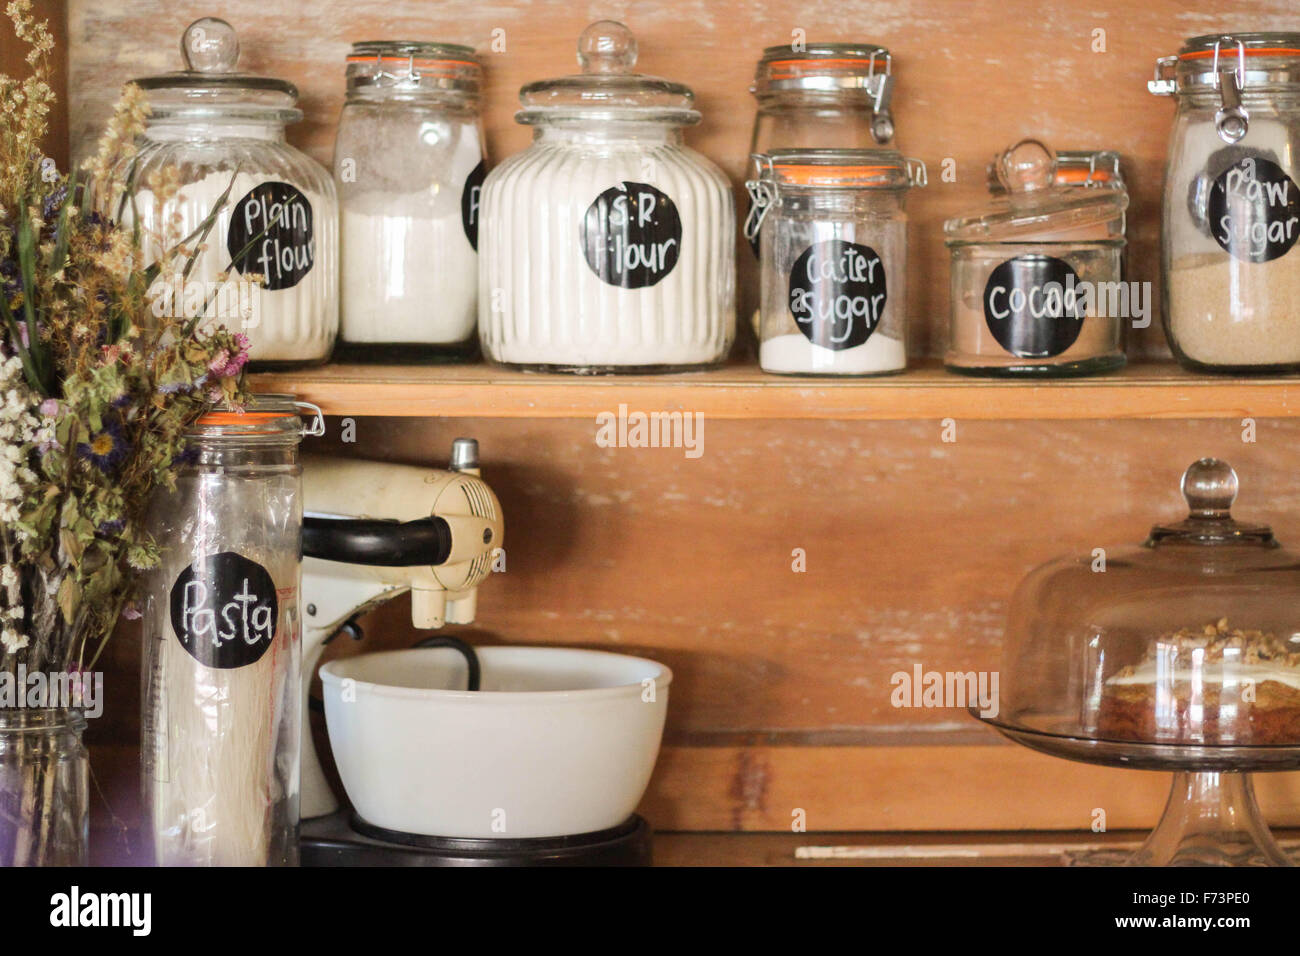 Baking Ingredients Displayed On An Antique Kitchen Hutch. A Stylish Way To  Store Your Staples Like Flour, Sugar, Pasta Etc.